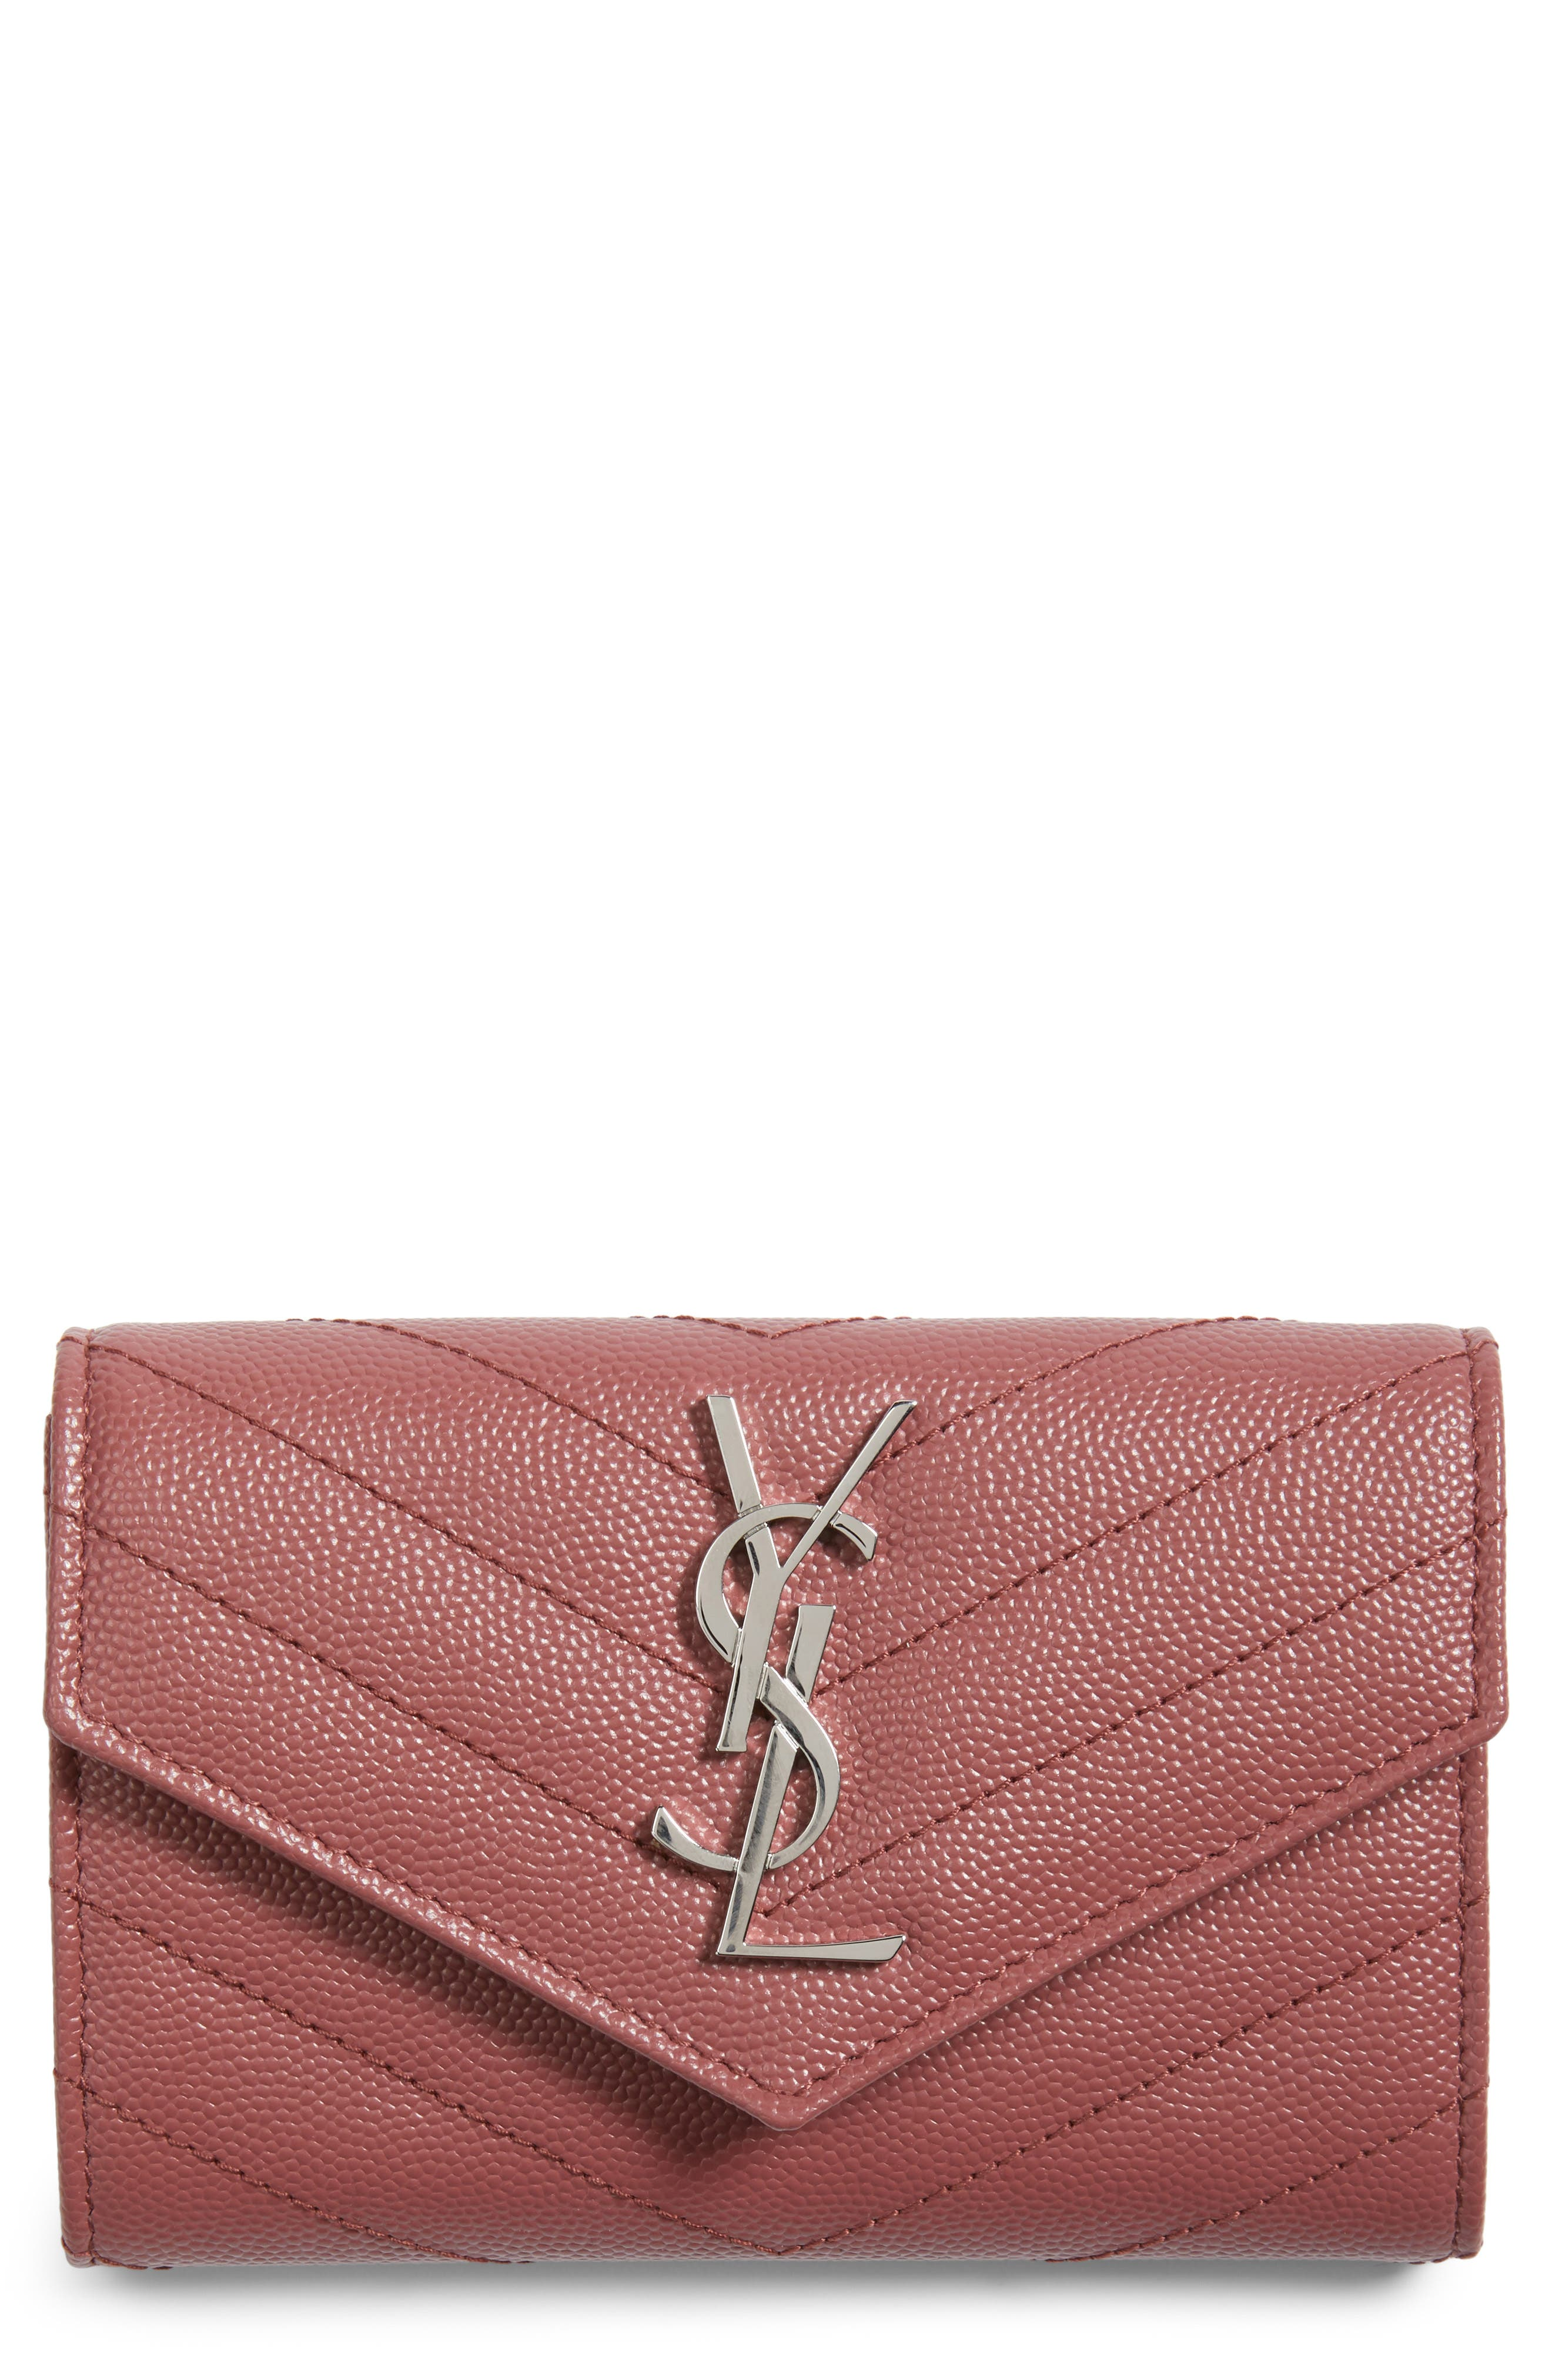 'Small Monogram' Leather French Wallet,                             Main thumbnail 4, color,